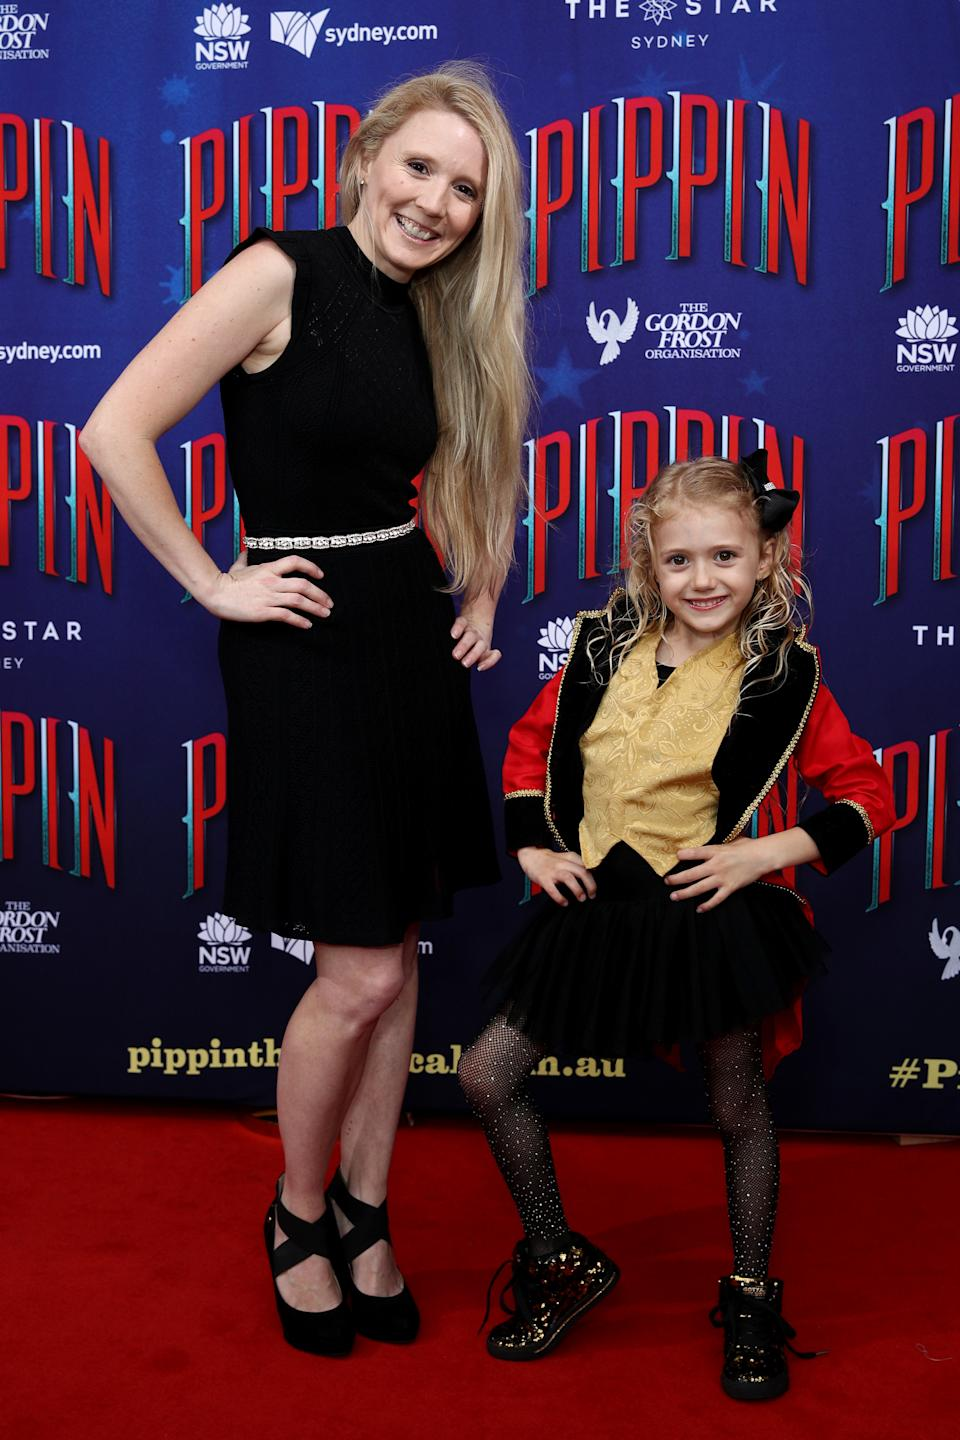 Nikki Webster and daughter Skylah McMah attend opening night of Pippin at Lyric Theatre, Star City on December 03, 2020 in Sydney, Australia.